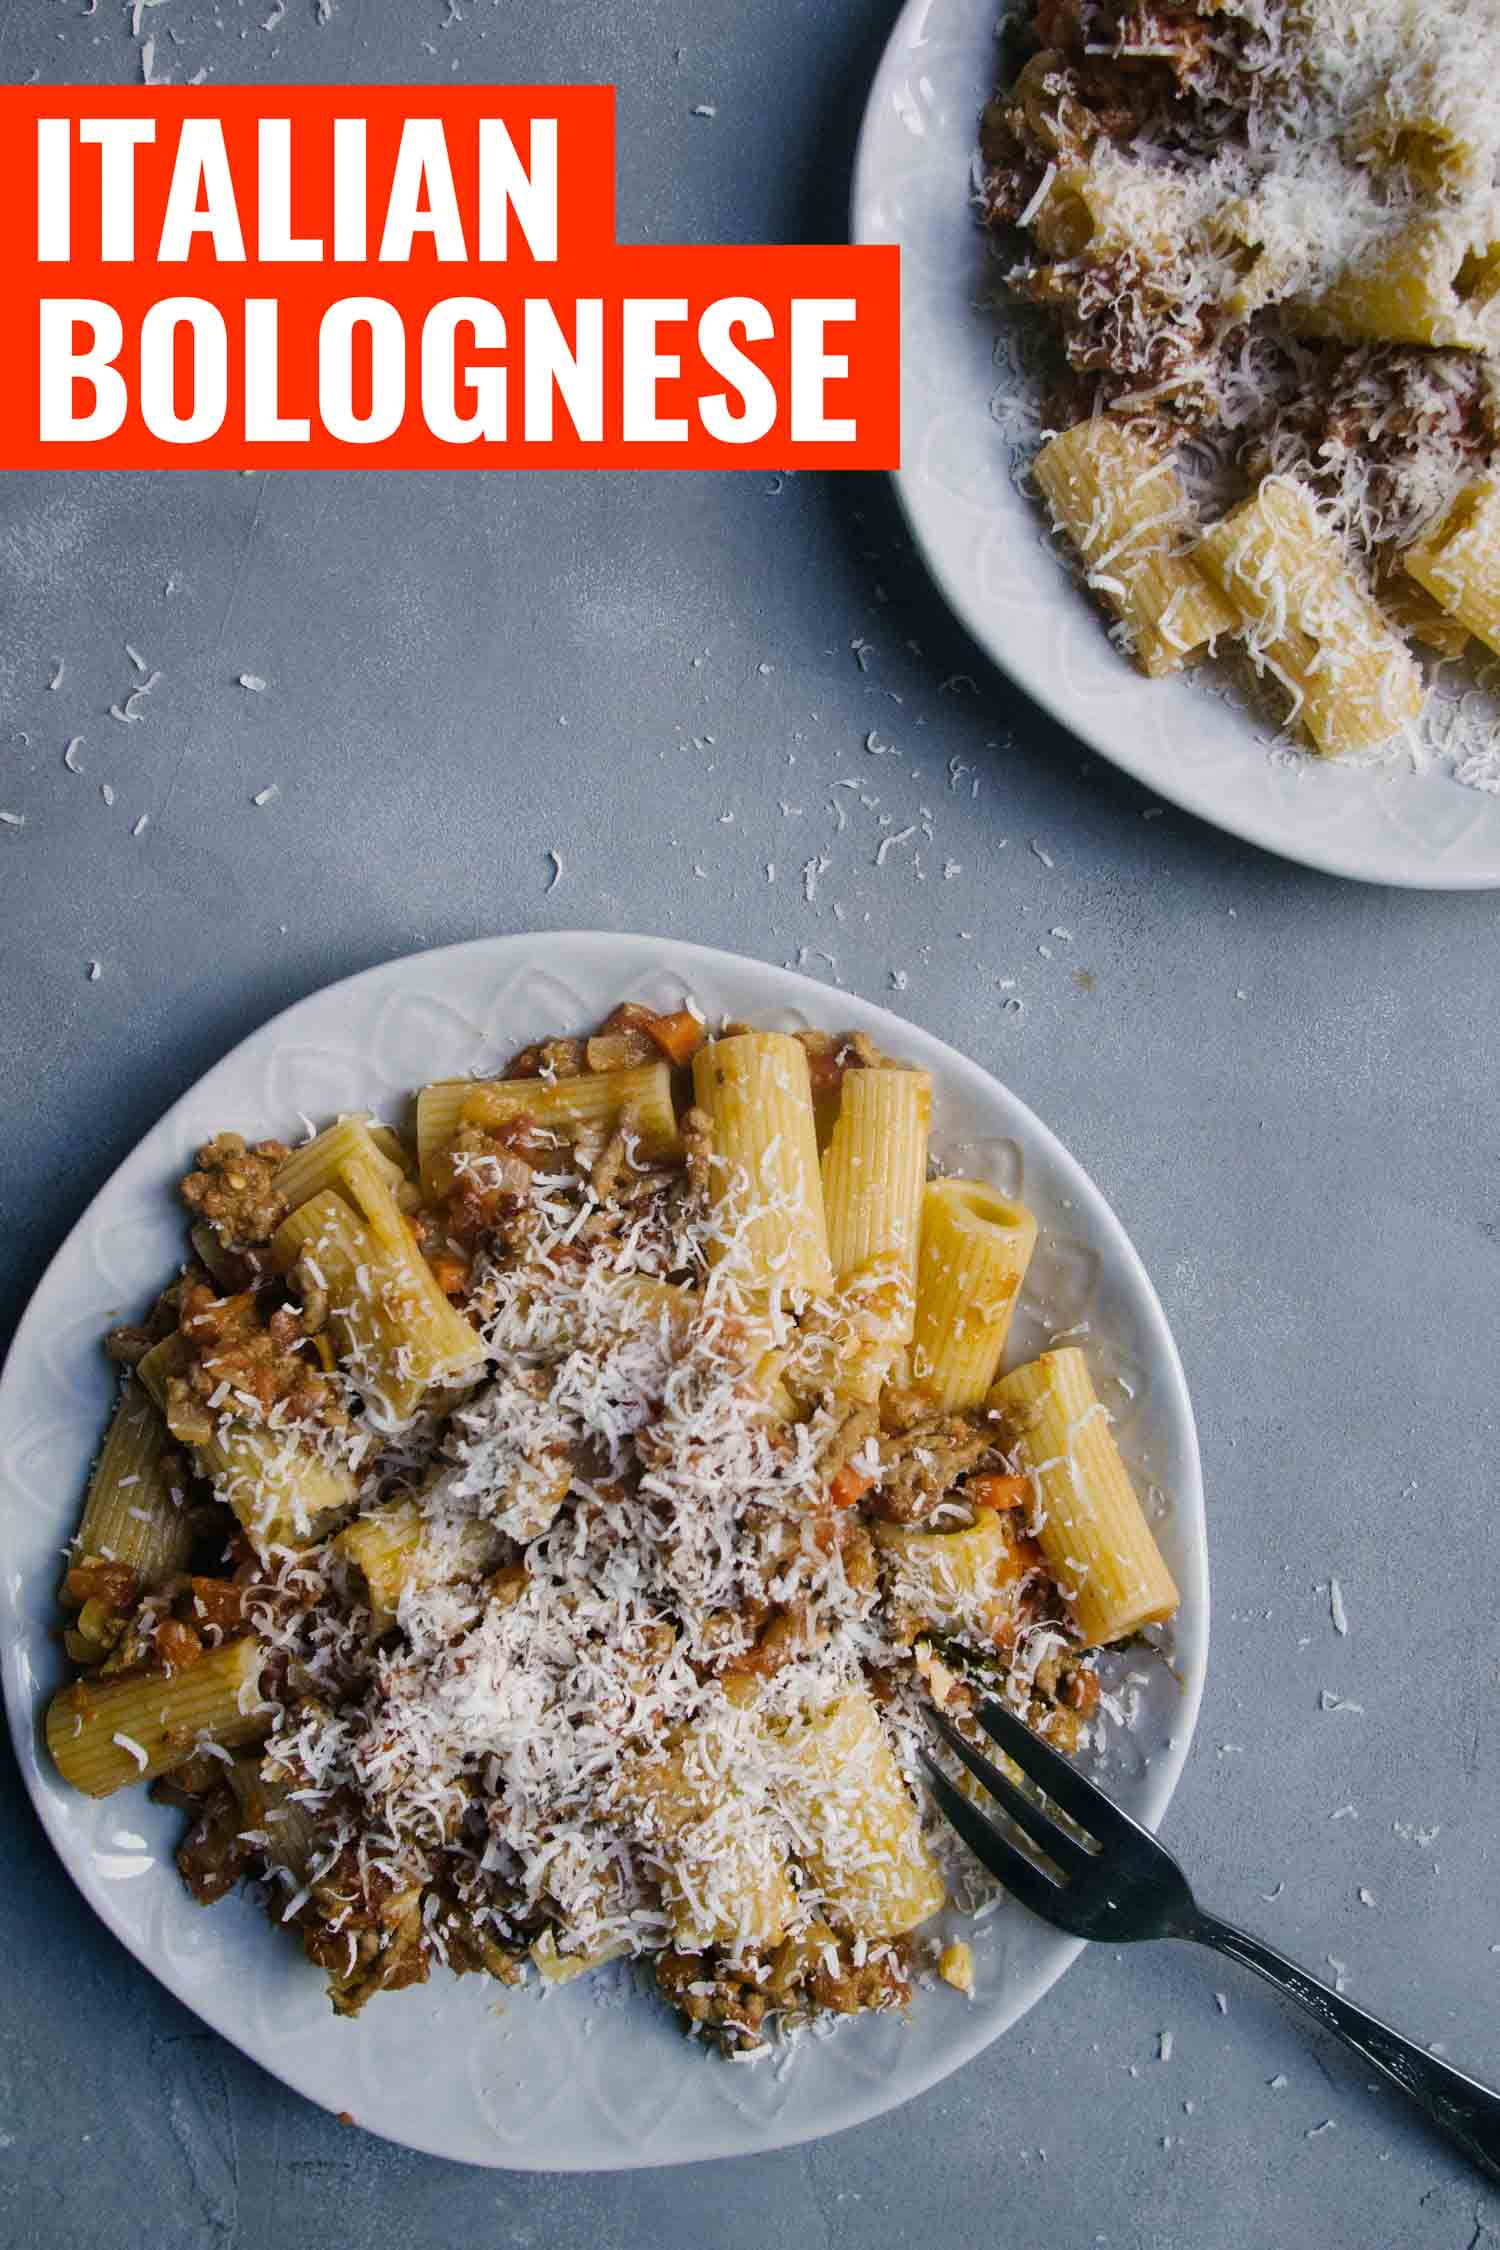 Pasta bolognese sauce on a blue background